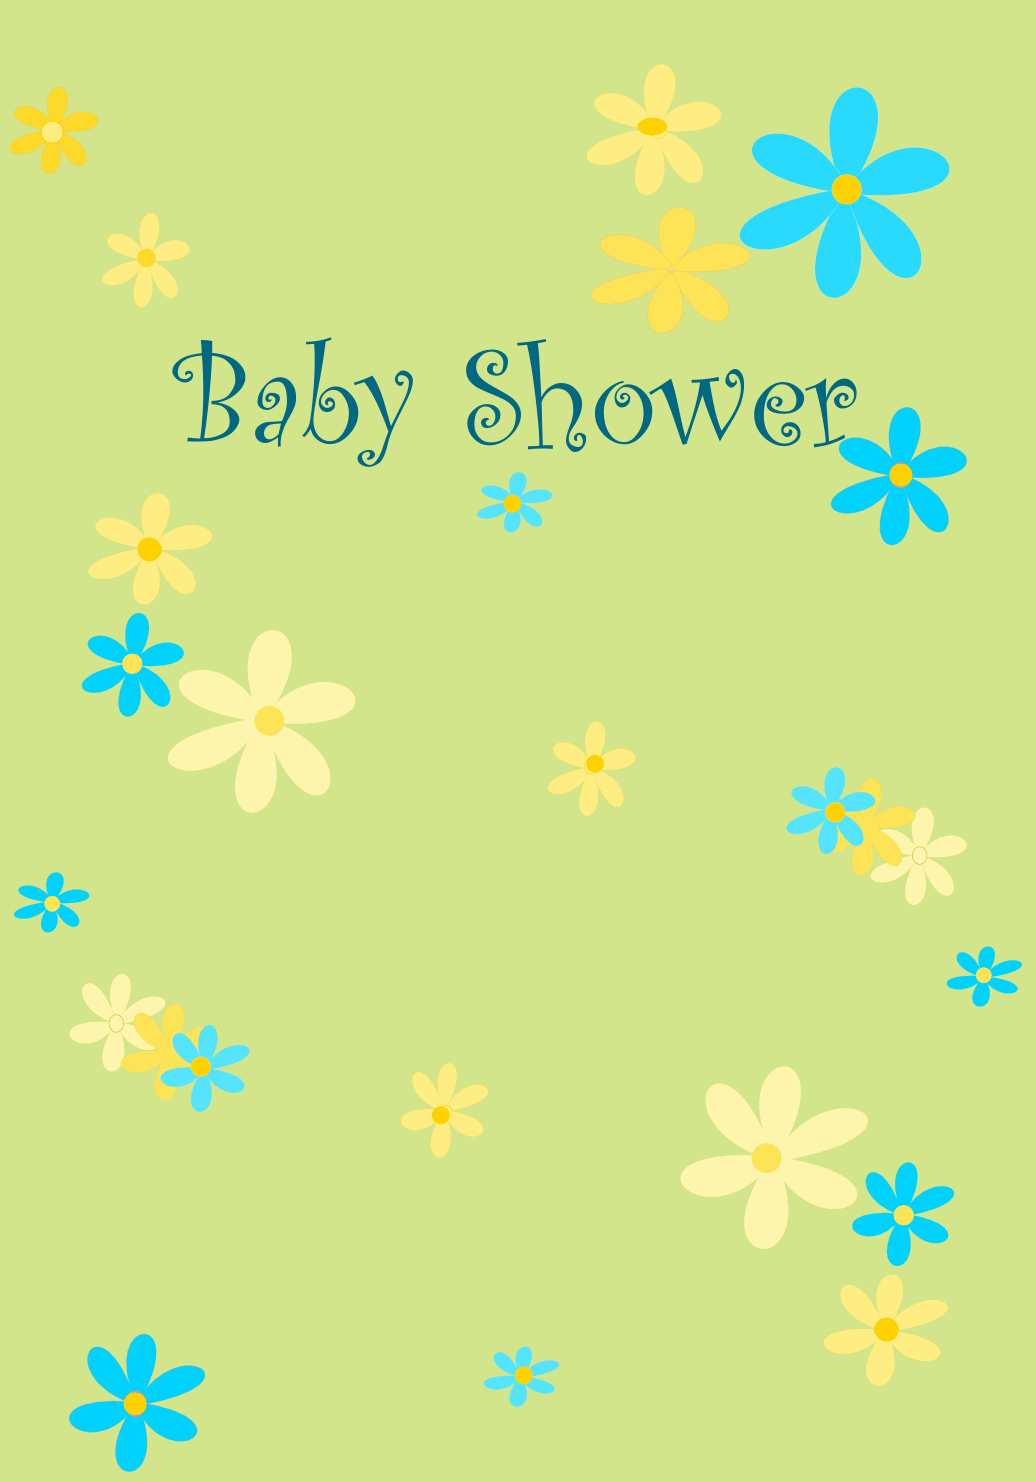 Baby Shower Card Printable Elegant Printable Birthday Cards Printable Baby Shower Cards